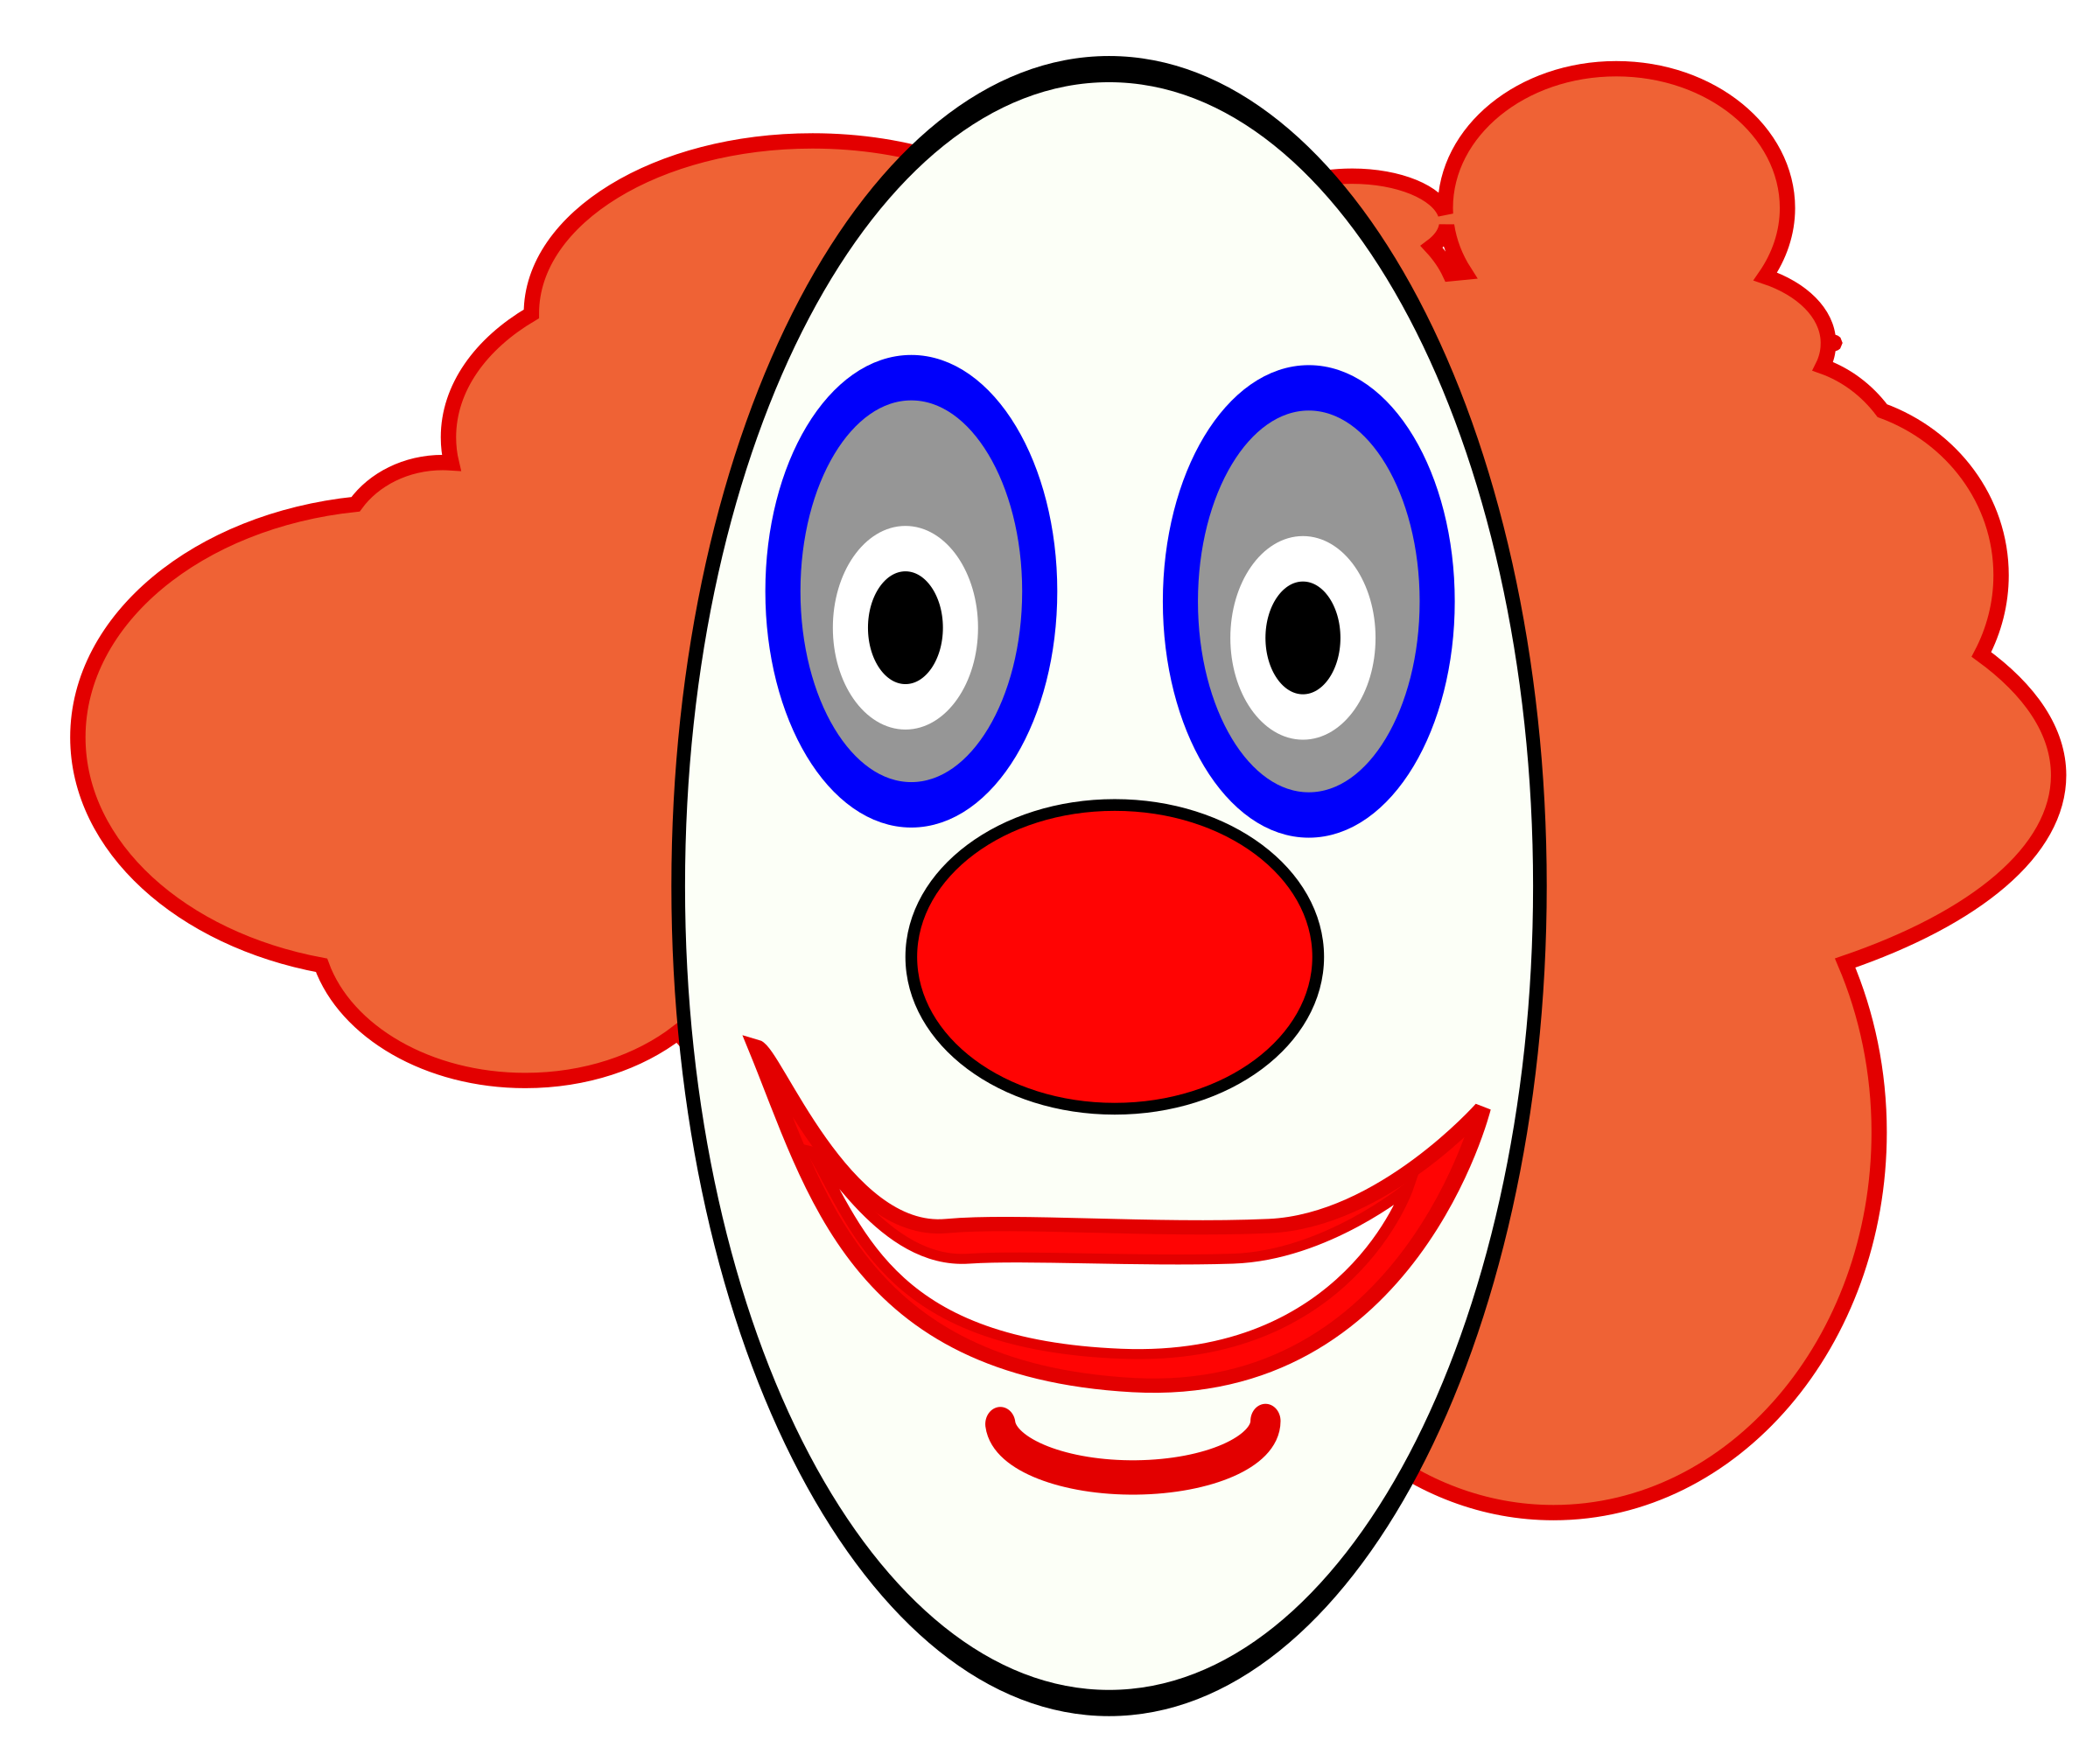 Jester laughing crown clipart black and white